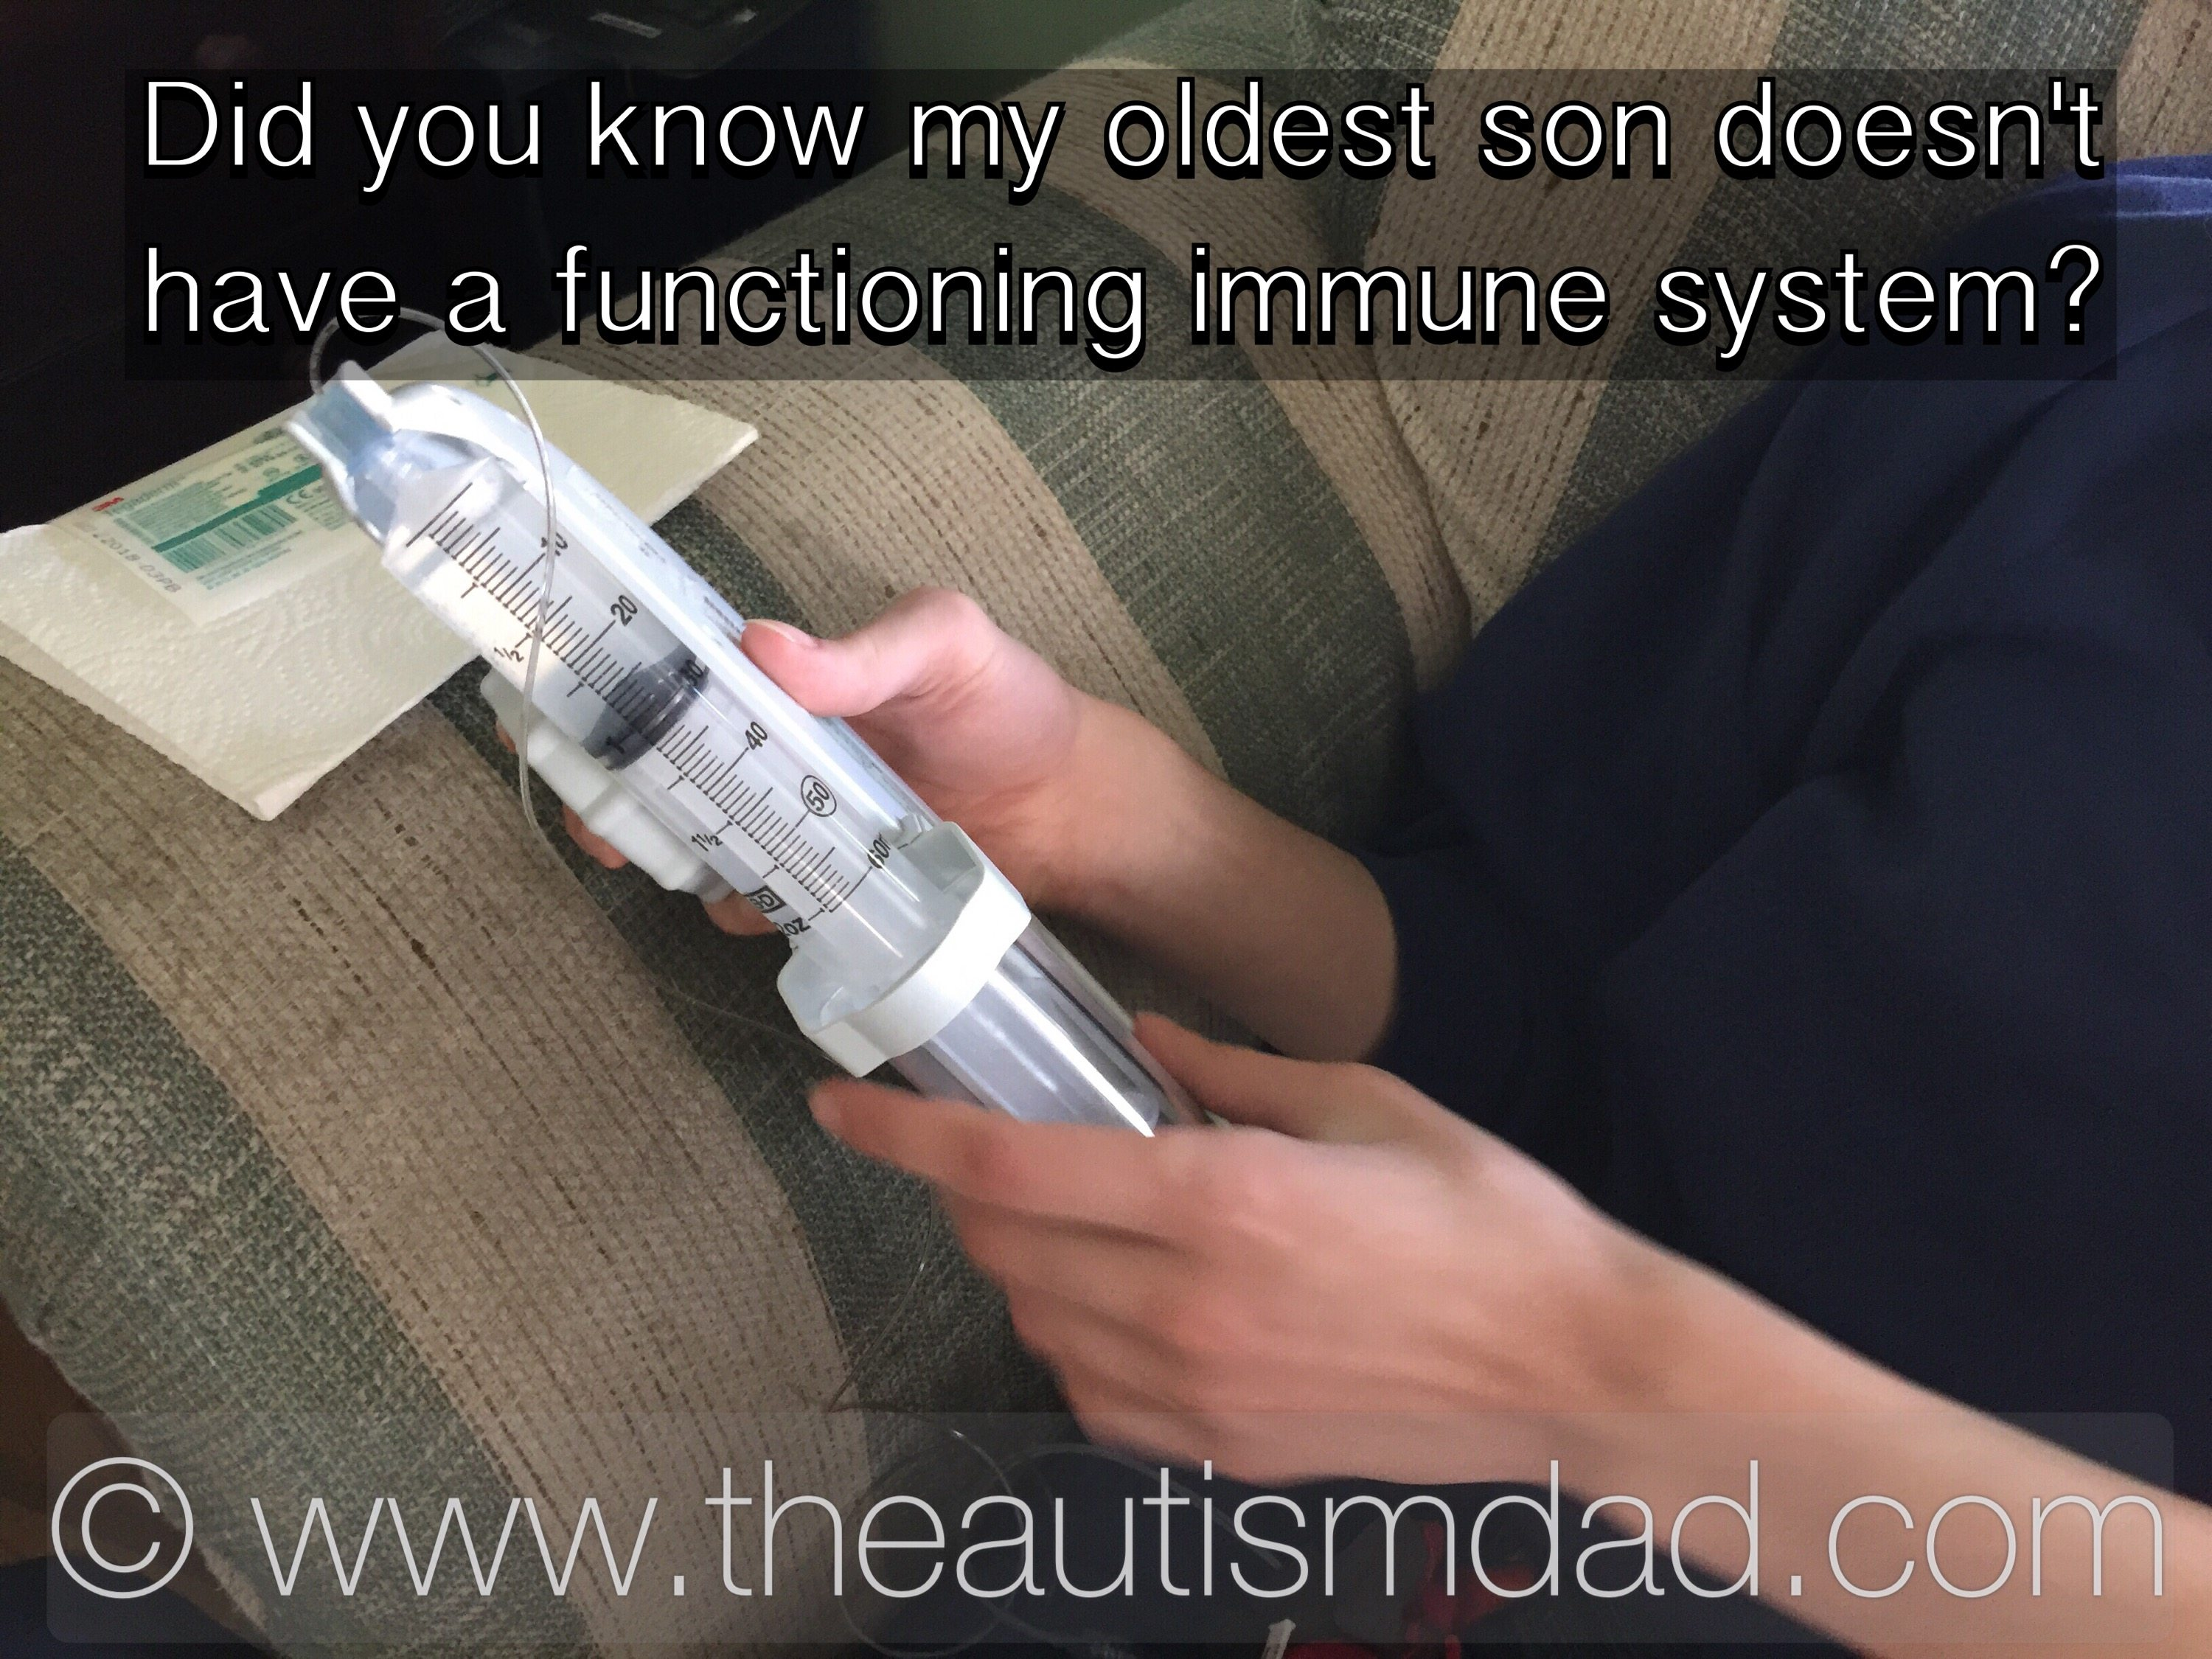 Did you know my oldest son doesn't have a functioning immune system?